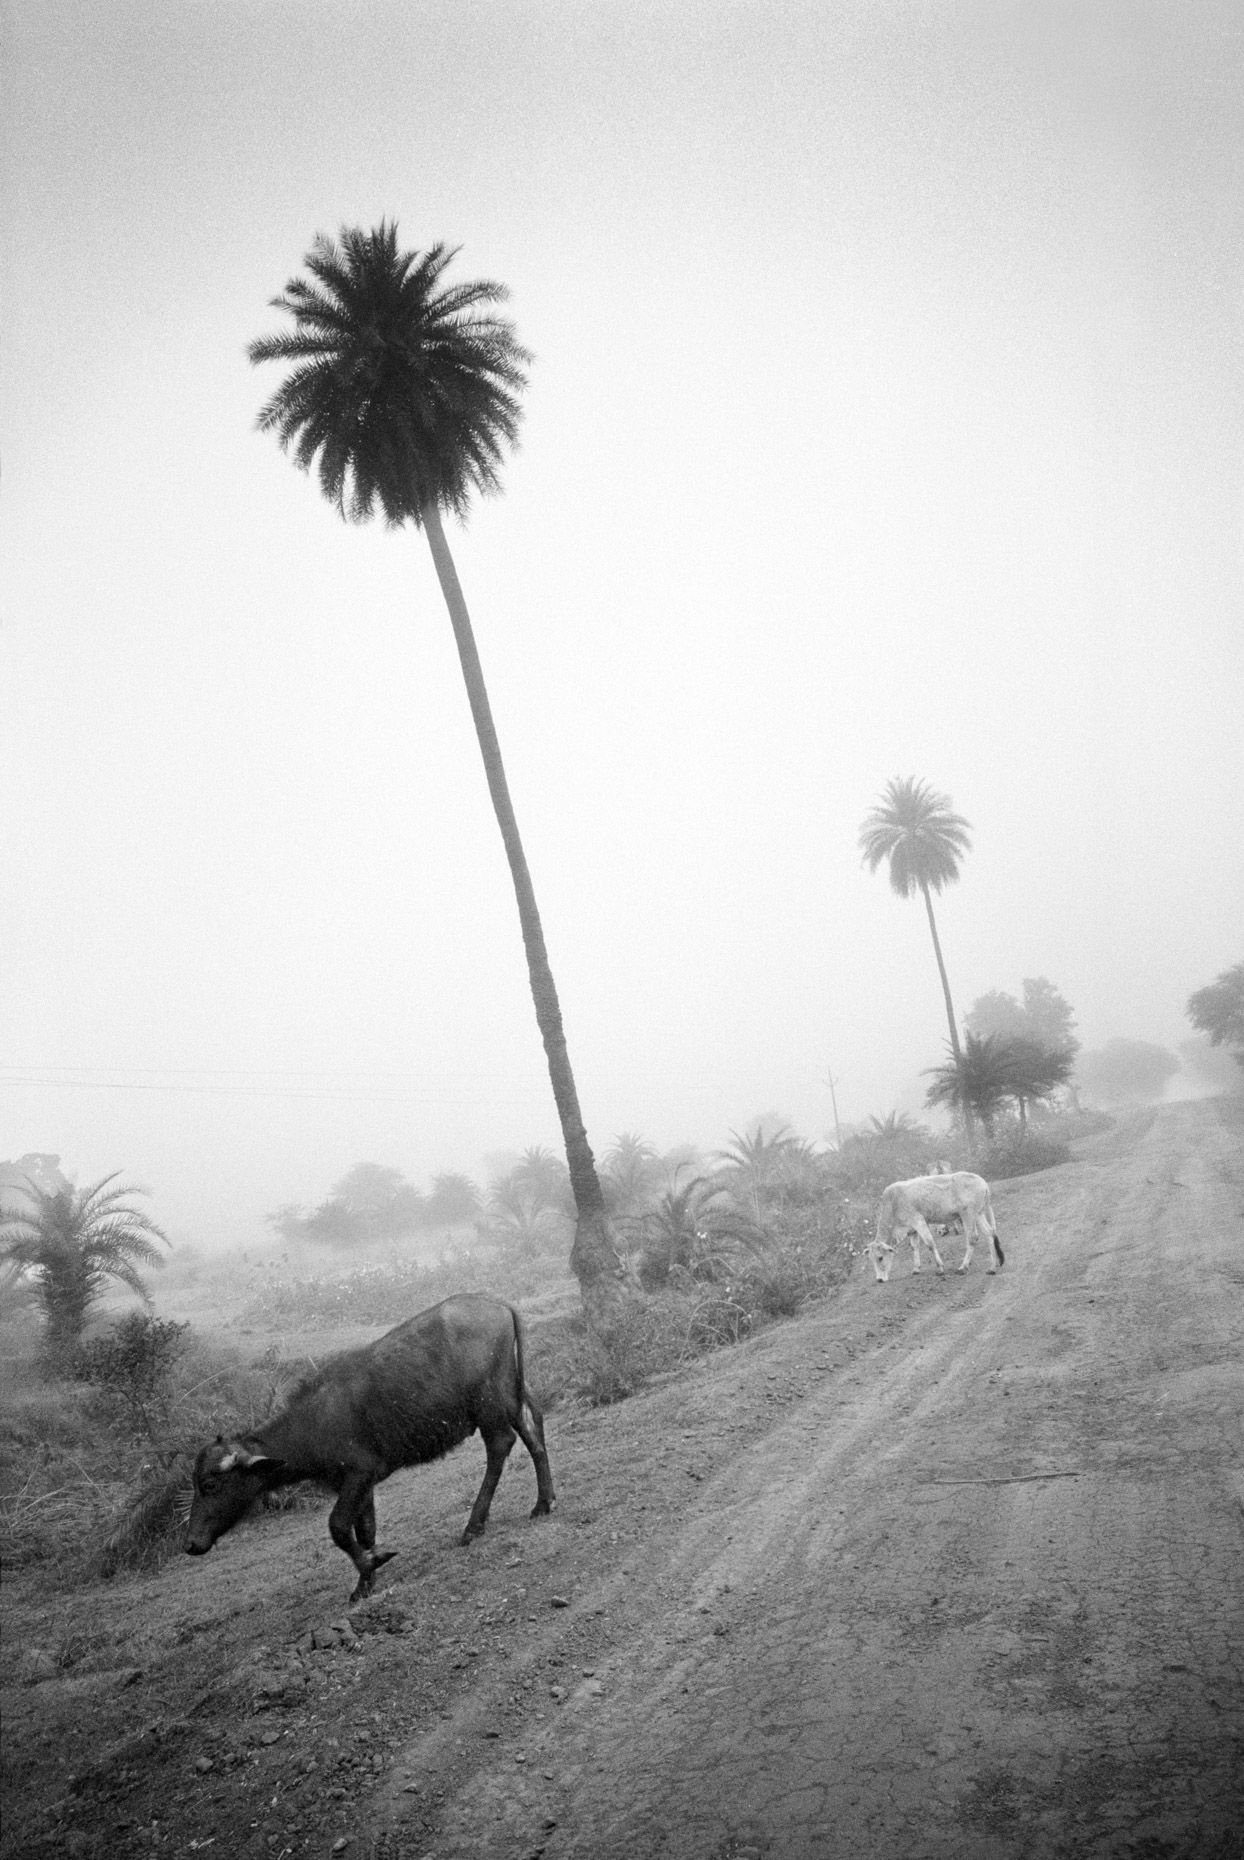 Water Buffalo and Palm Tree, on the road to Khajaraho